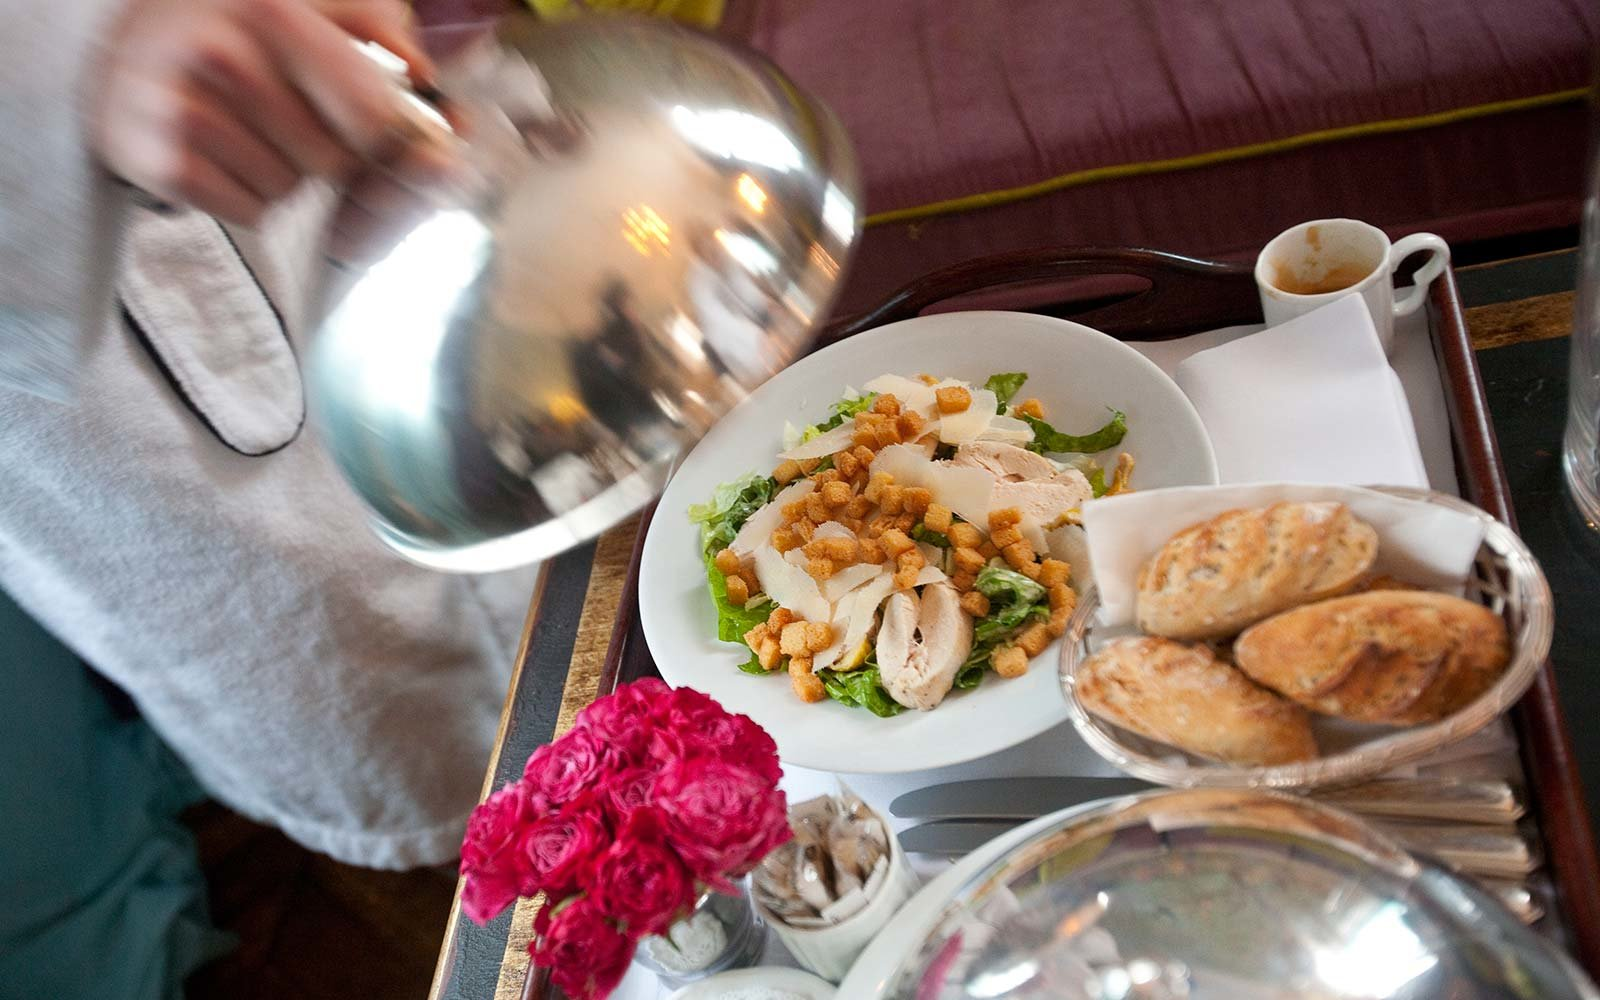 Room Service: Hotel Room Service Dishes To Avoid, According To A Hotel